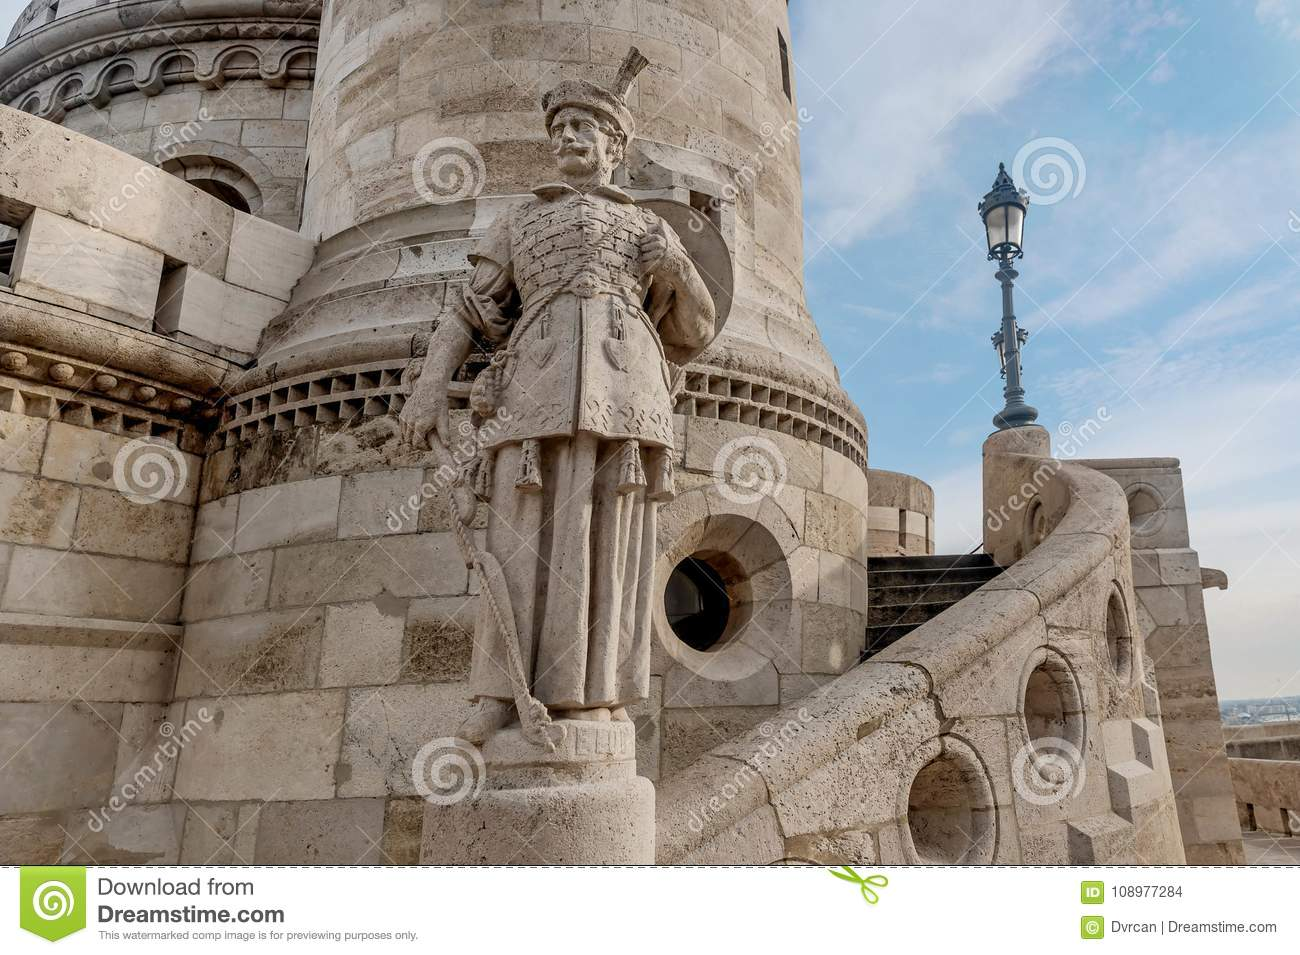 Statue at Fisherman Bastion, Buda Castle in Budapest, Hungary